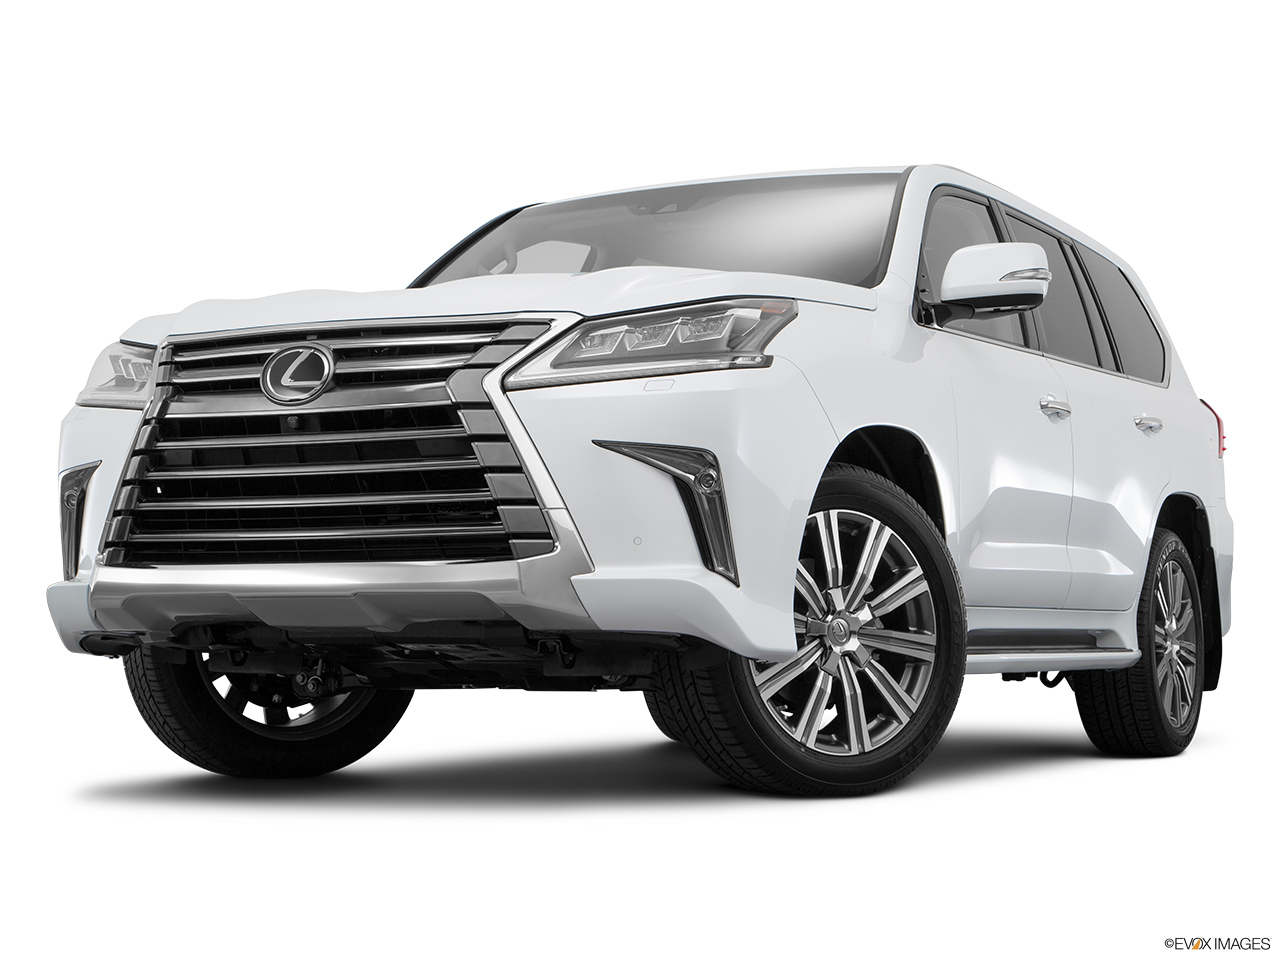 Lexus lx 2017 570 premier united arab emirates front angle view low wide